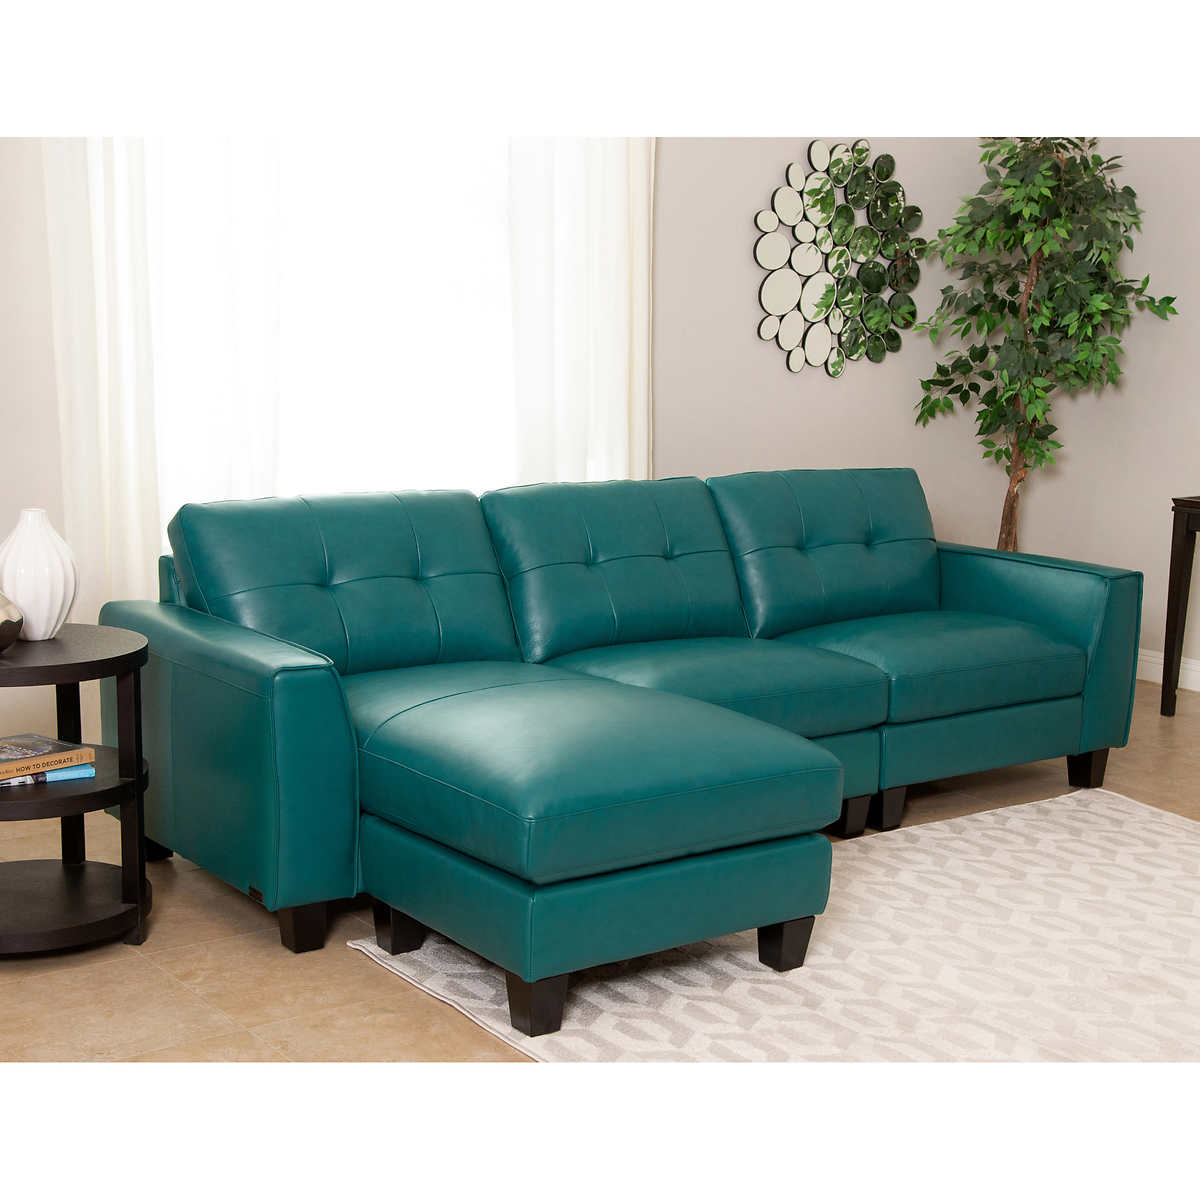 Teal Furniture leather sofas & sectionals | costco